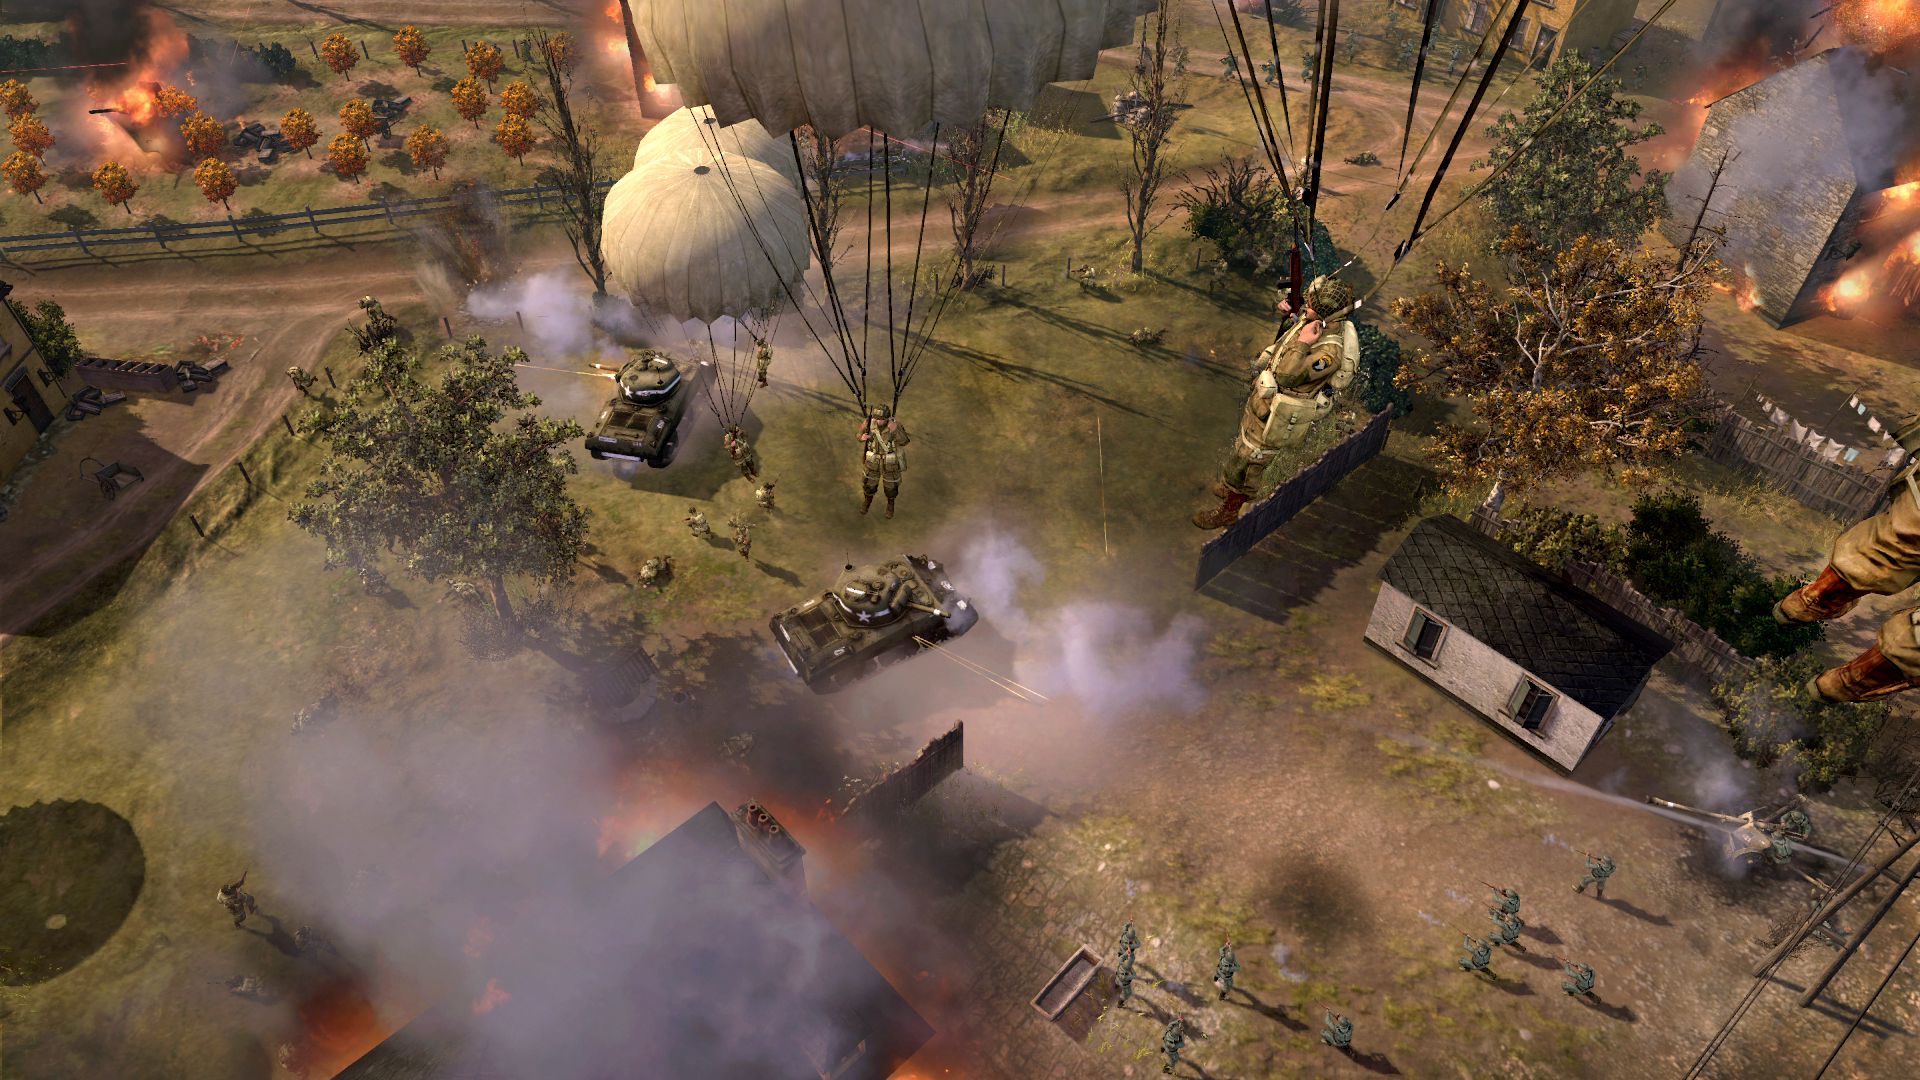 Coh 2 Case Blue : Case blue free online videos best movies tv shows faceclips